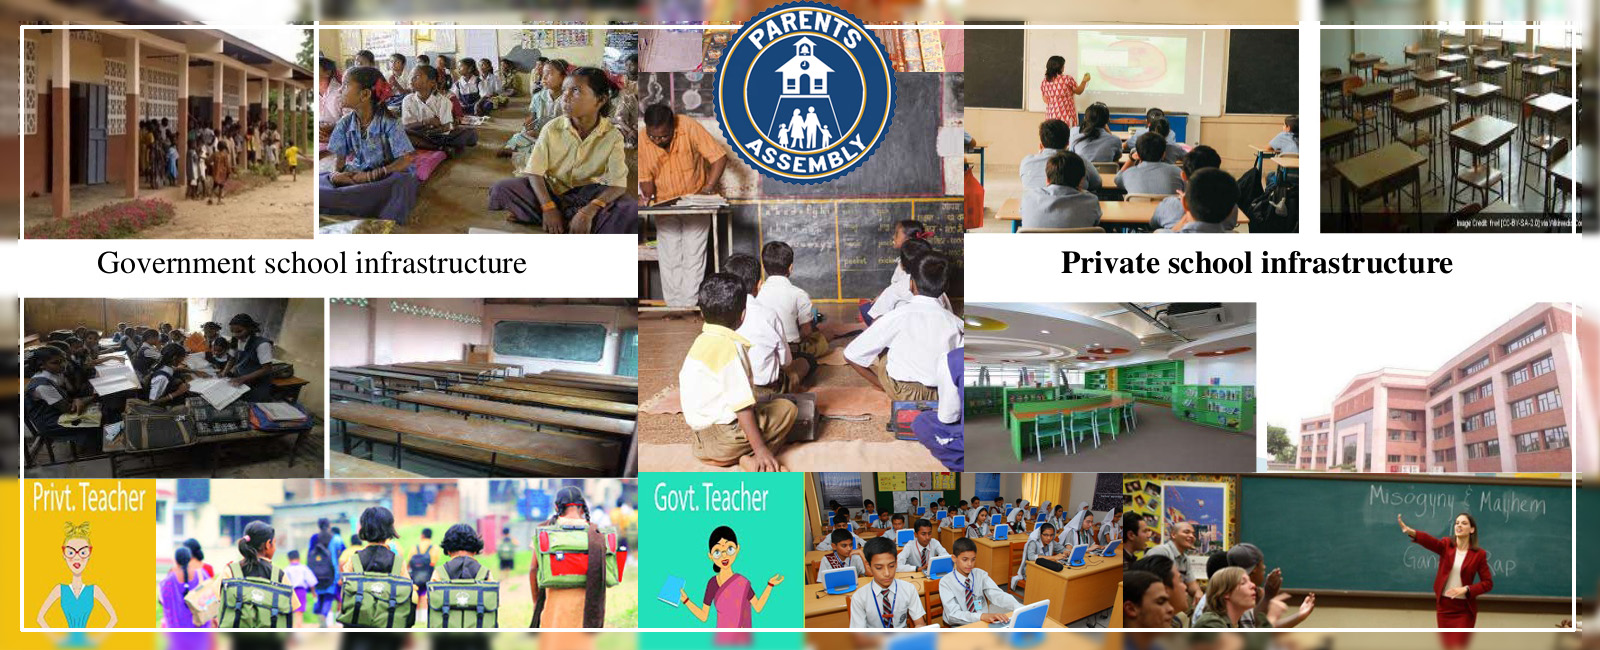 government-school-vs-private-school